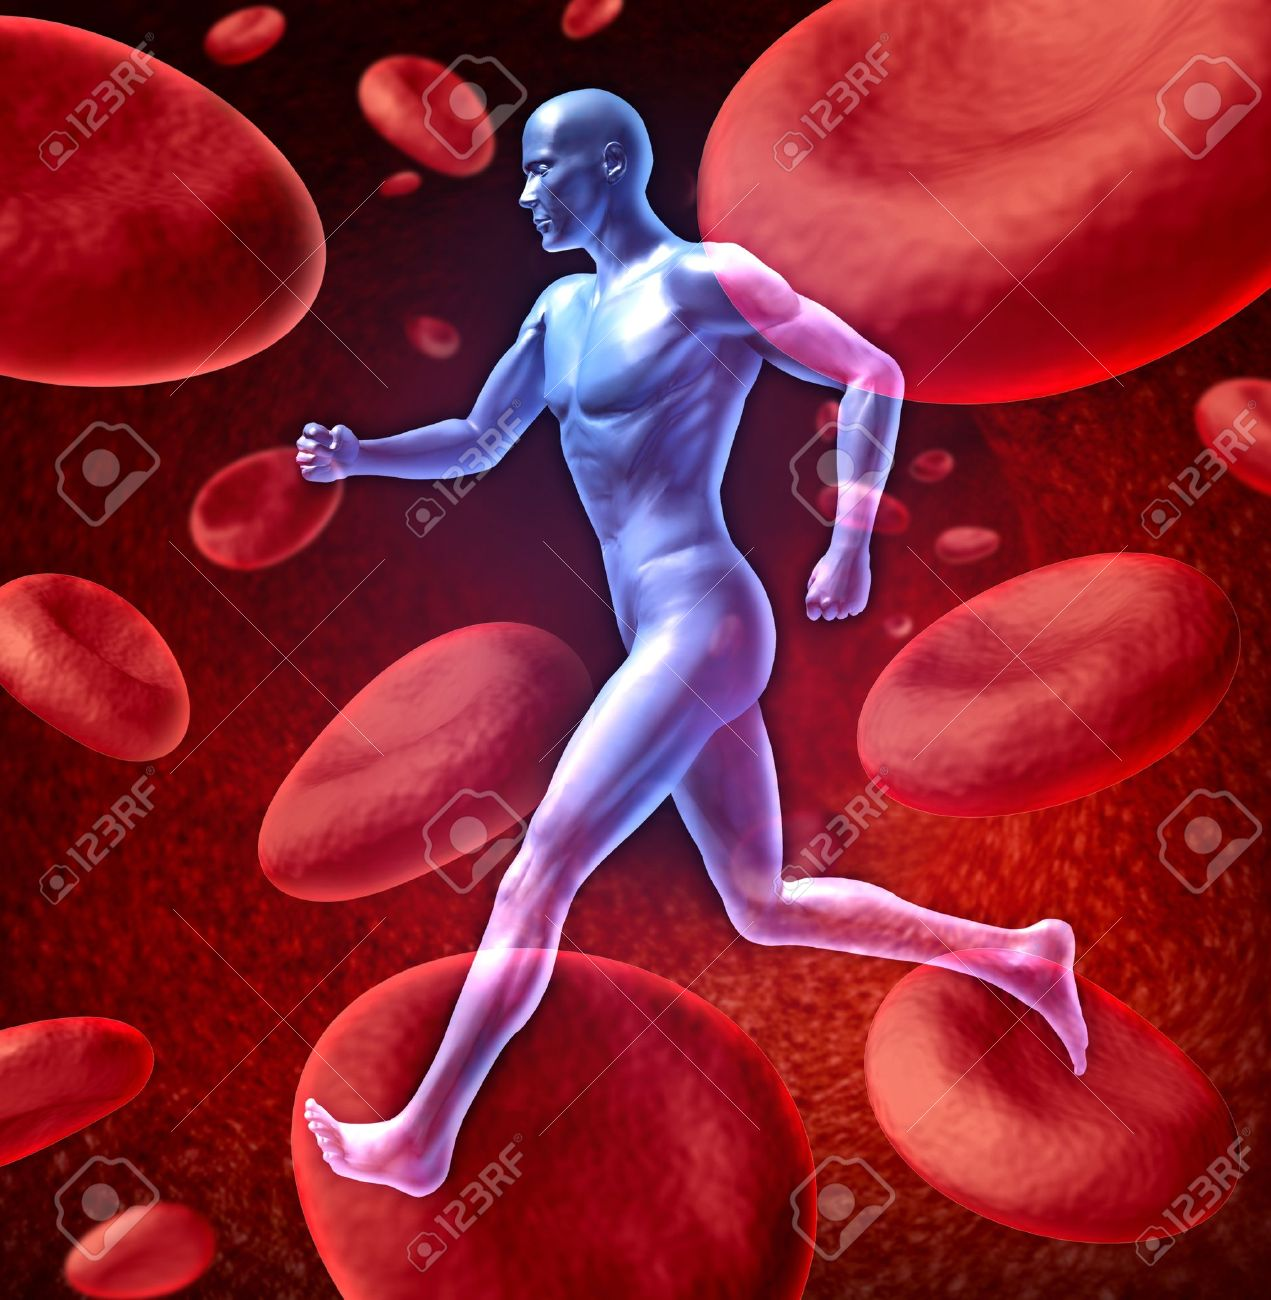 Human cardiovascular blood circulation system represented by a running human with a background of red blood cells flowing through an artery showing the concept of the medical circulatory body that is well oxygenated. Stock Photo - 10743739